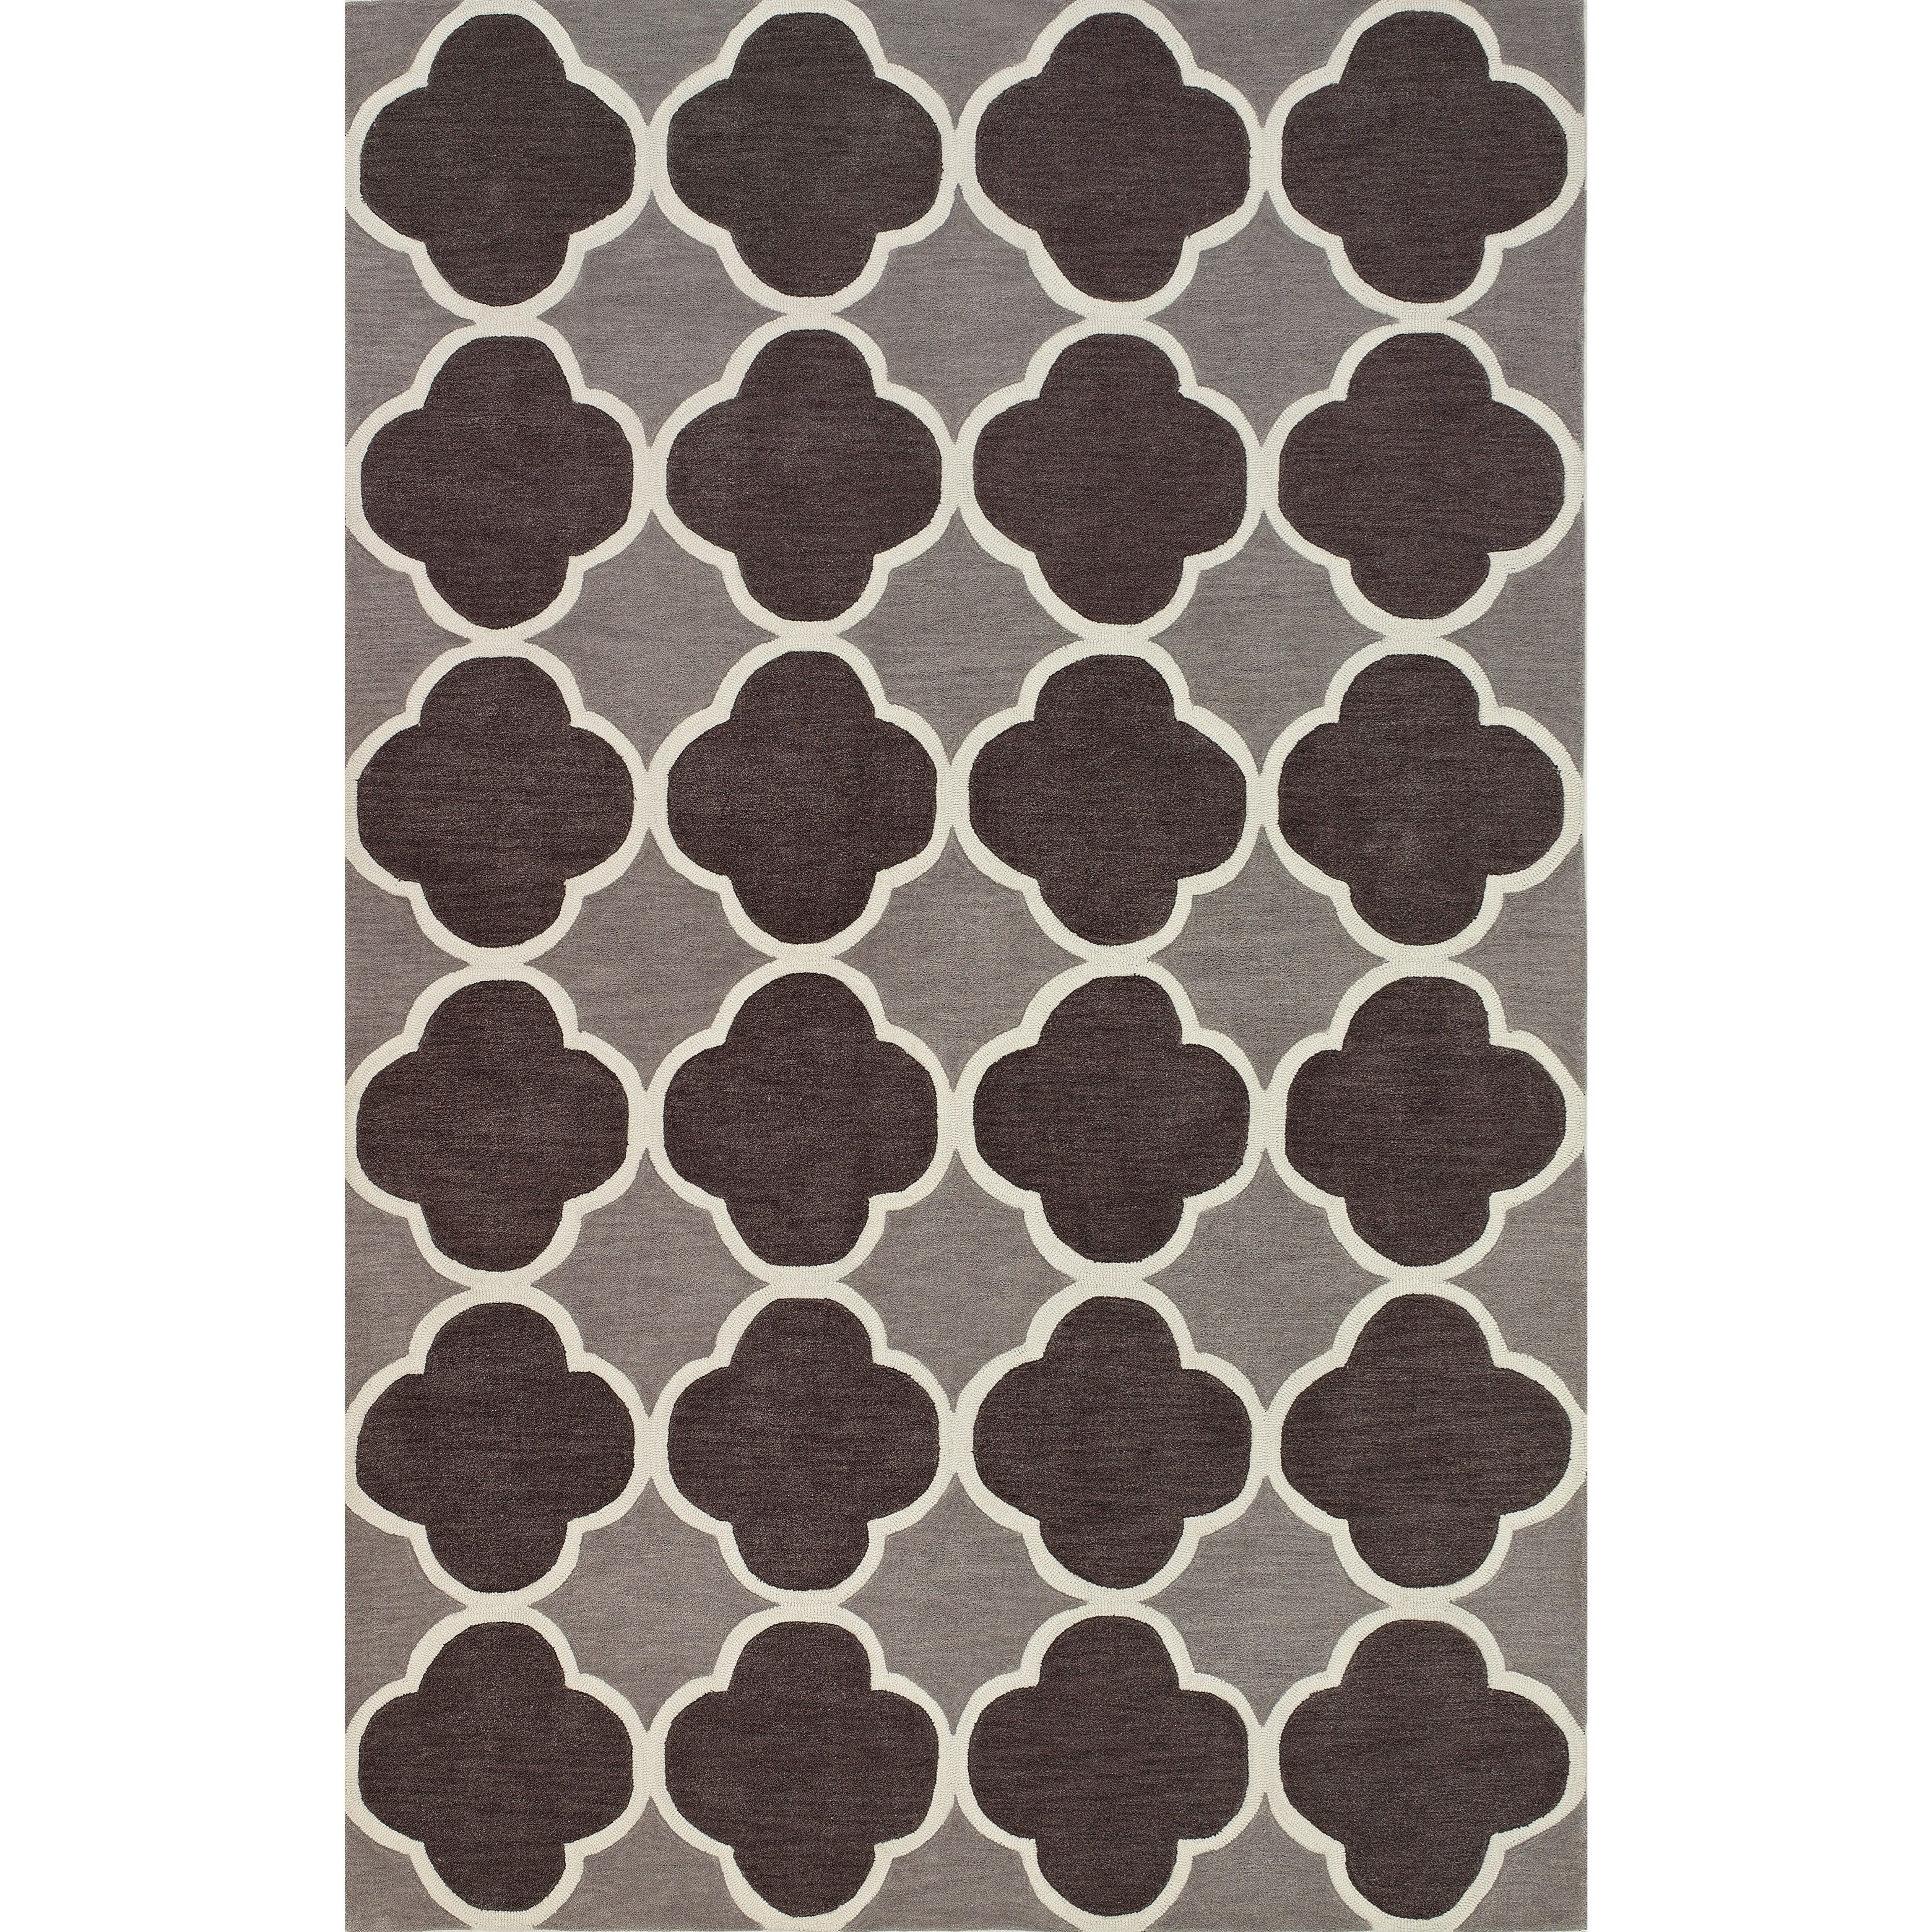 Dalyn Infinity Charcoal 9'X13' Rug - Item Number: IF2CC9X13